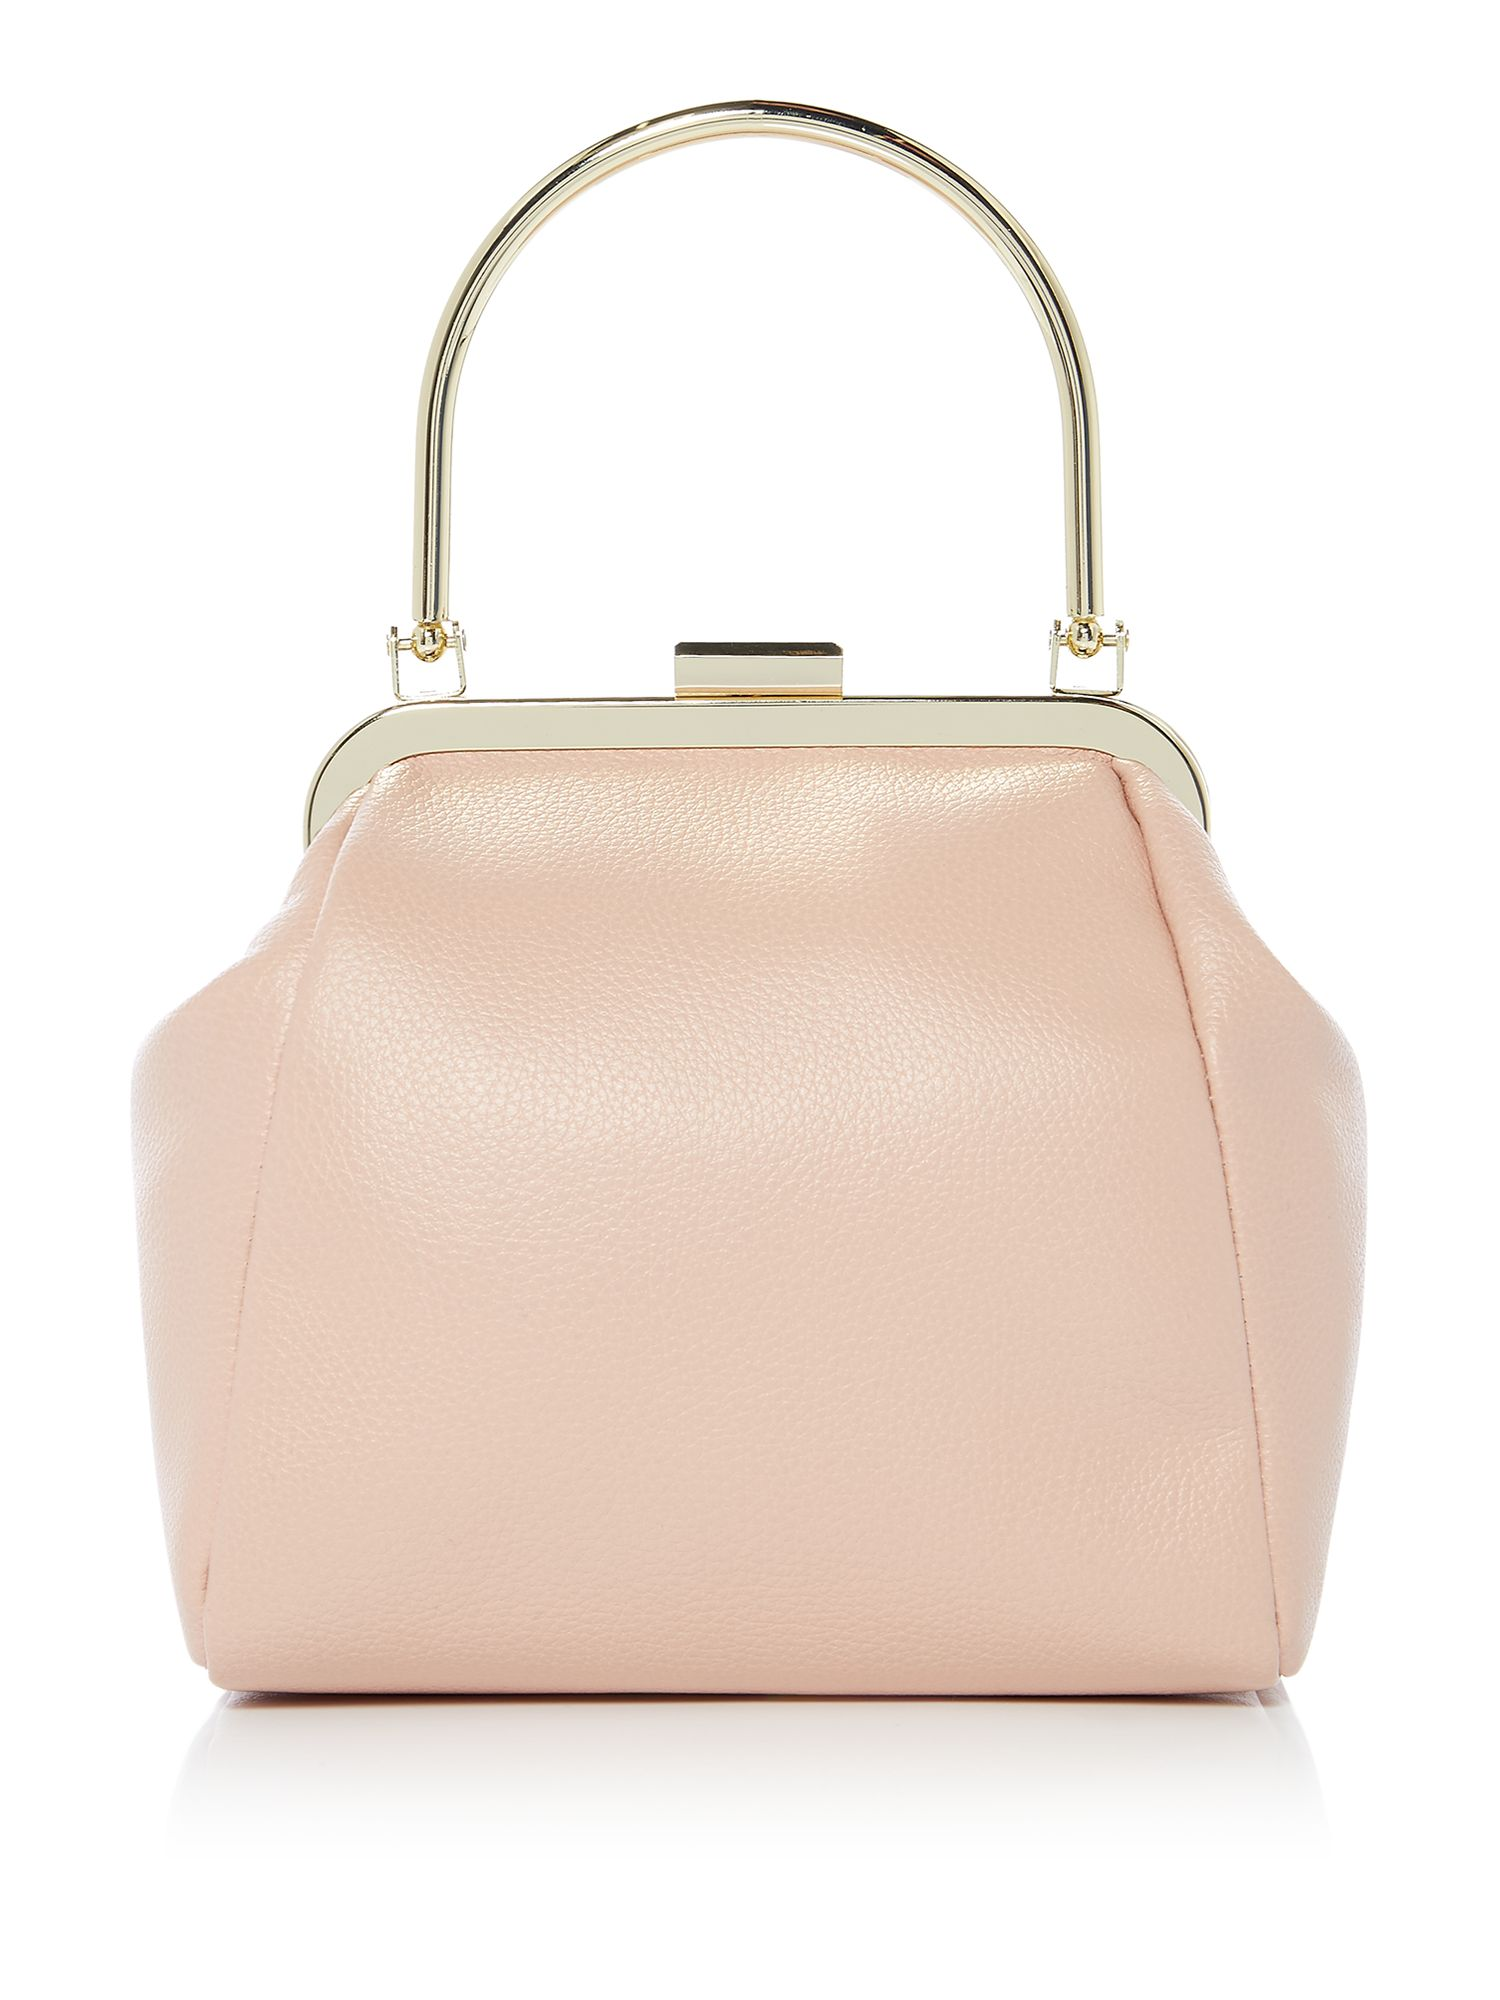 Therapy Ami occasion frame bag, Nude